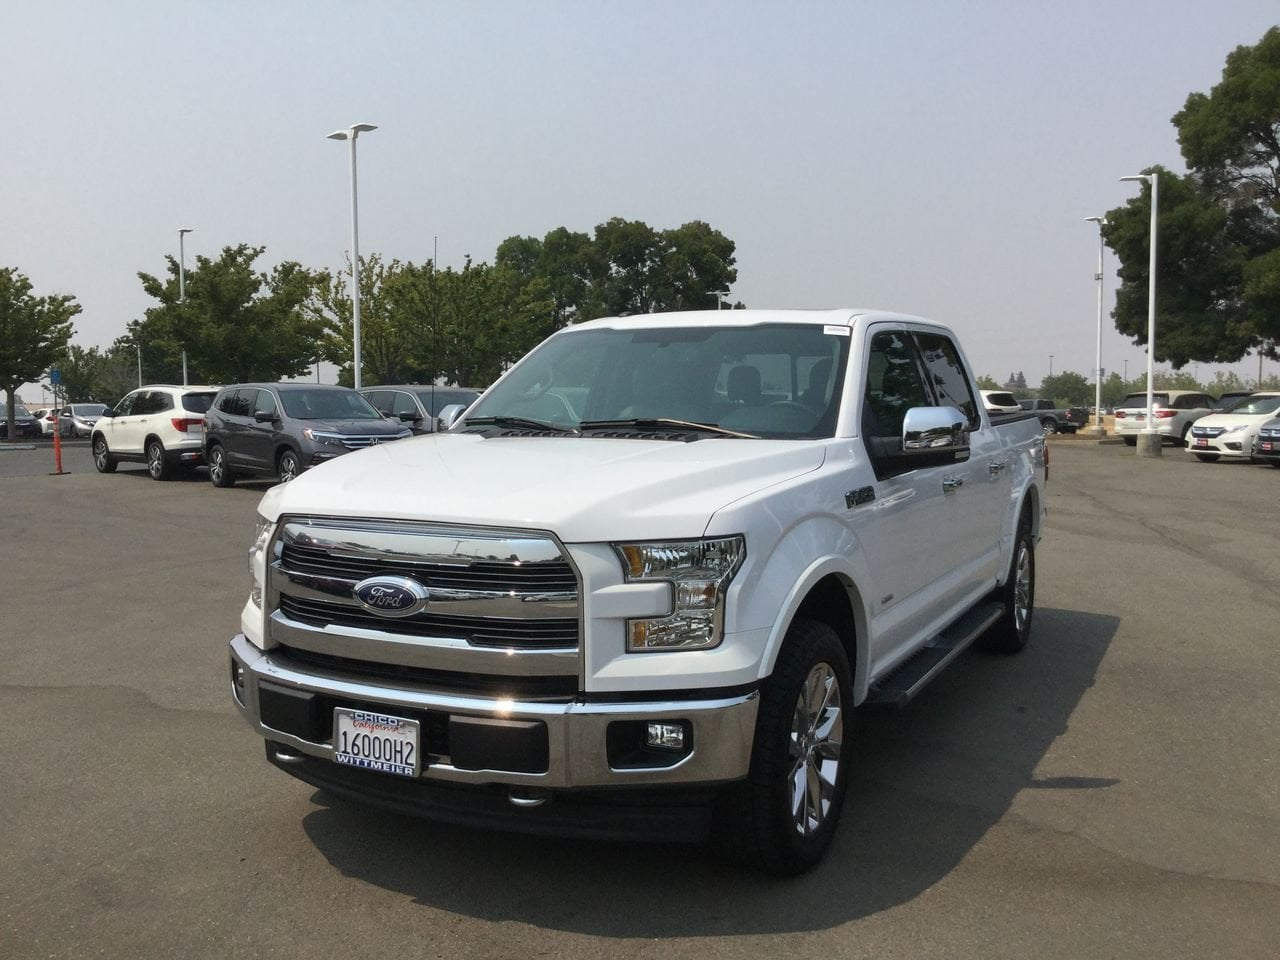 2017 Ford F-150 Lariat Crew Cab Short Bed Truck